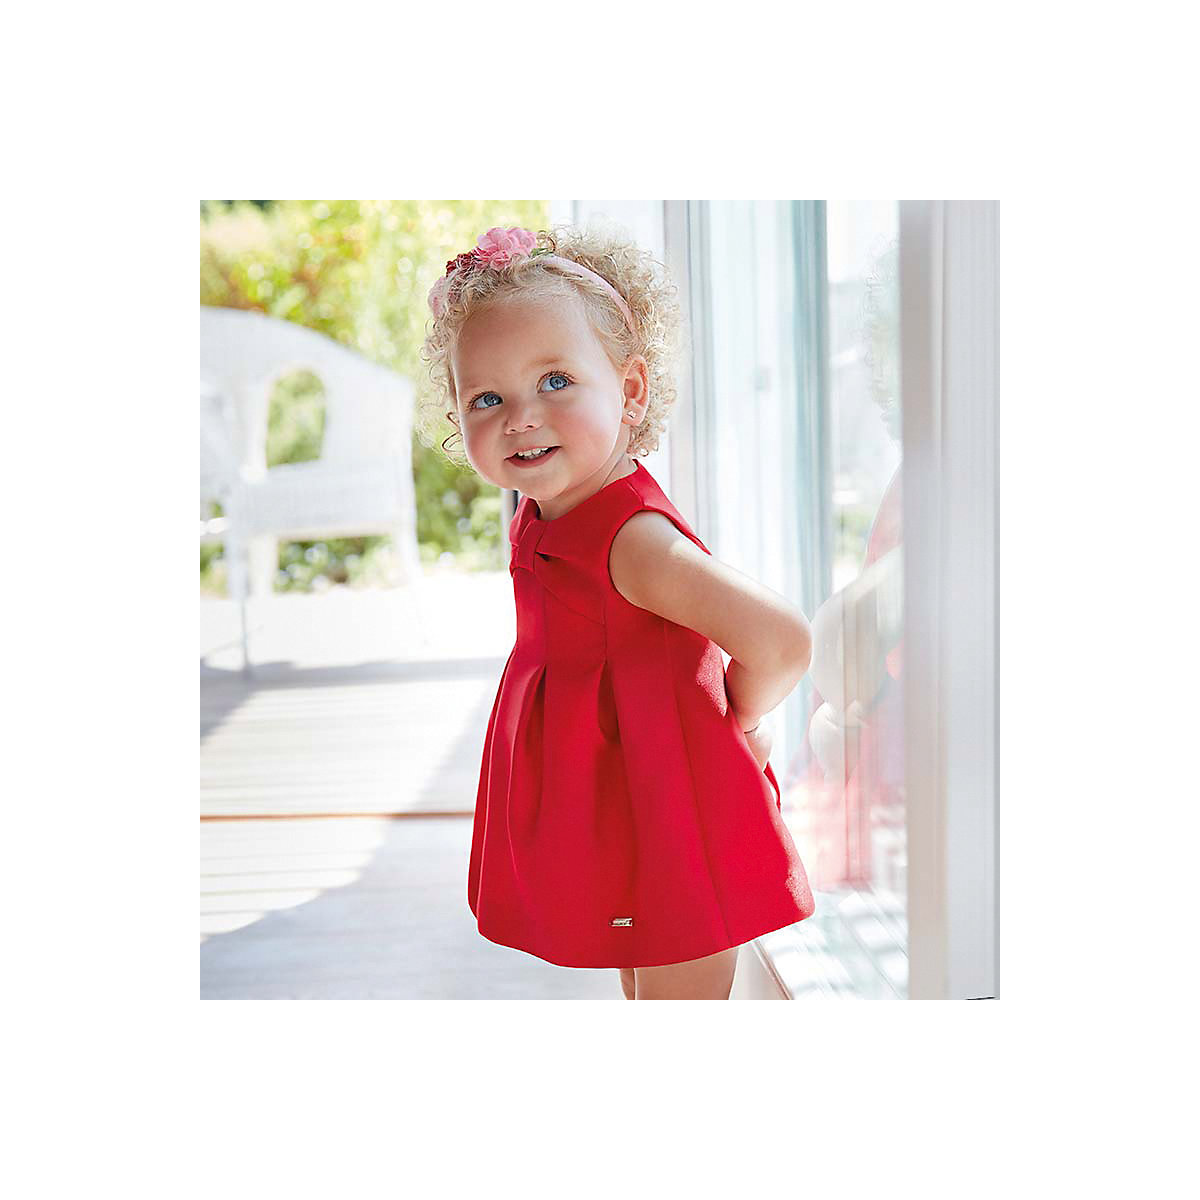 MAYORAL Dresses 10678724 Girl Children Party fitted pleated skirt Red Polyester Preppy Style Solid Knee-Length Sleeveless Sleeve